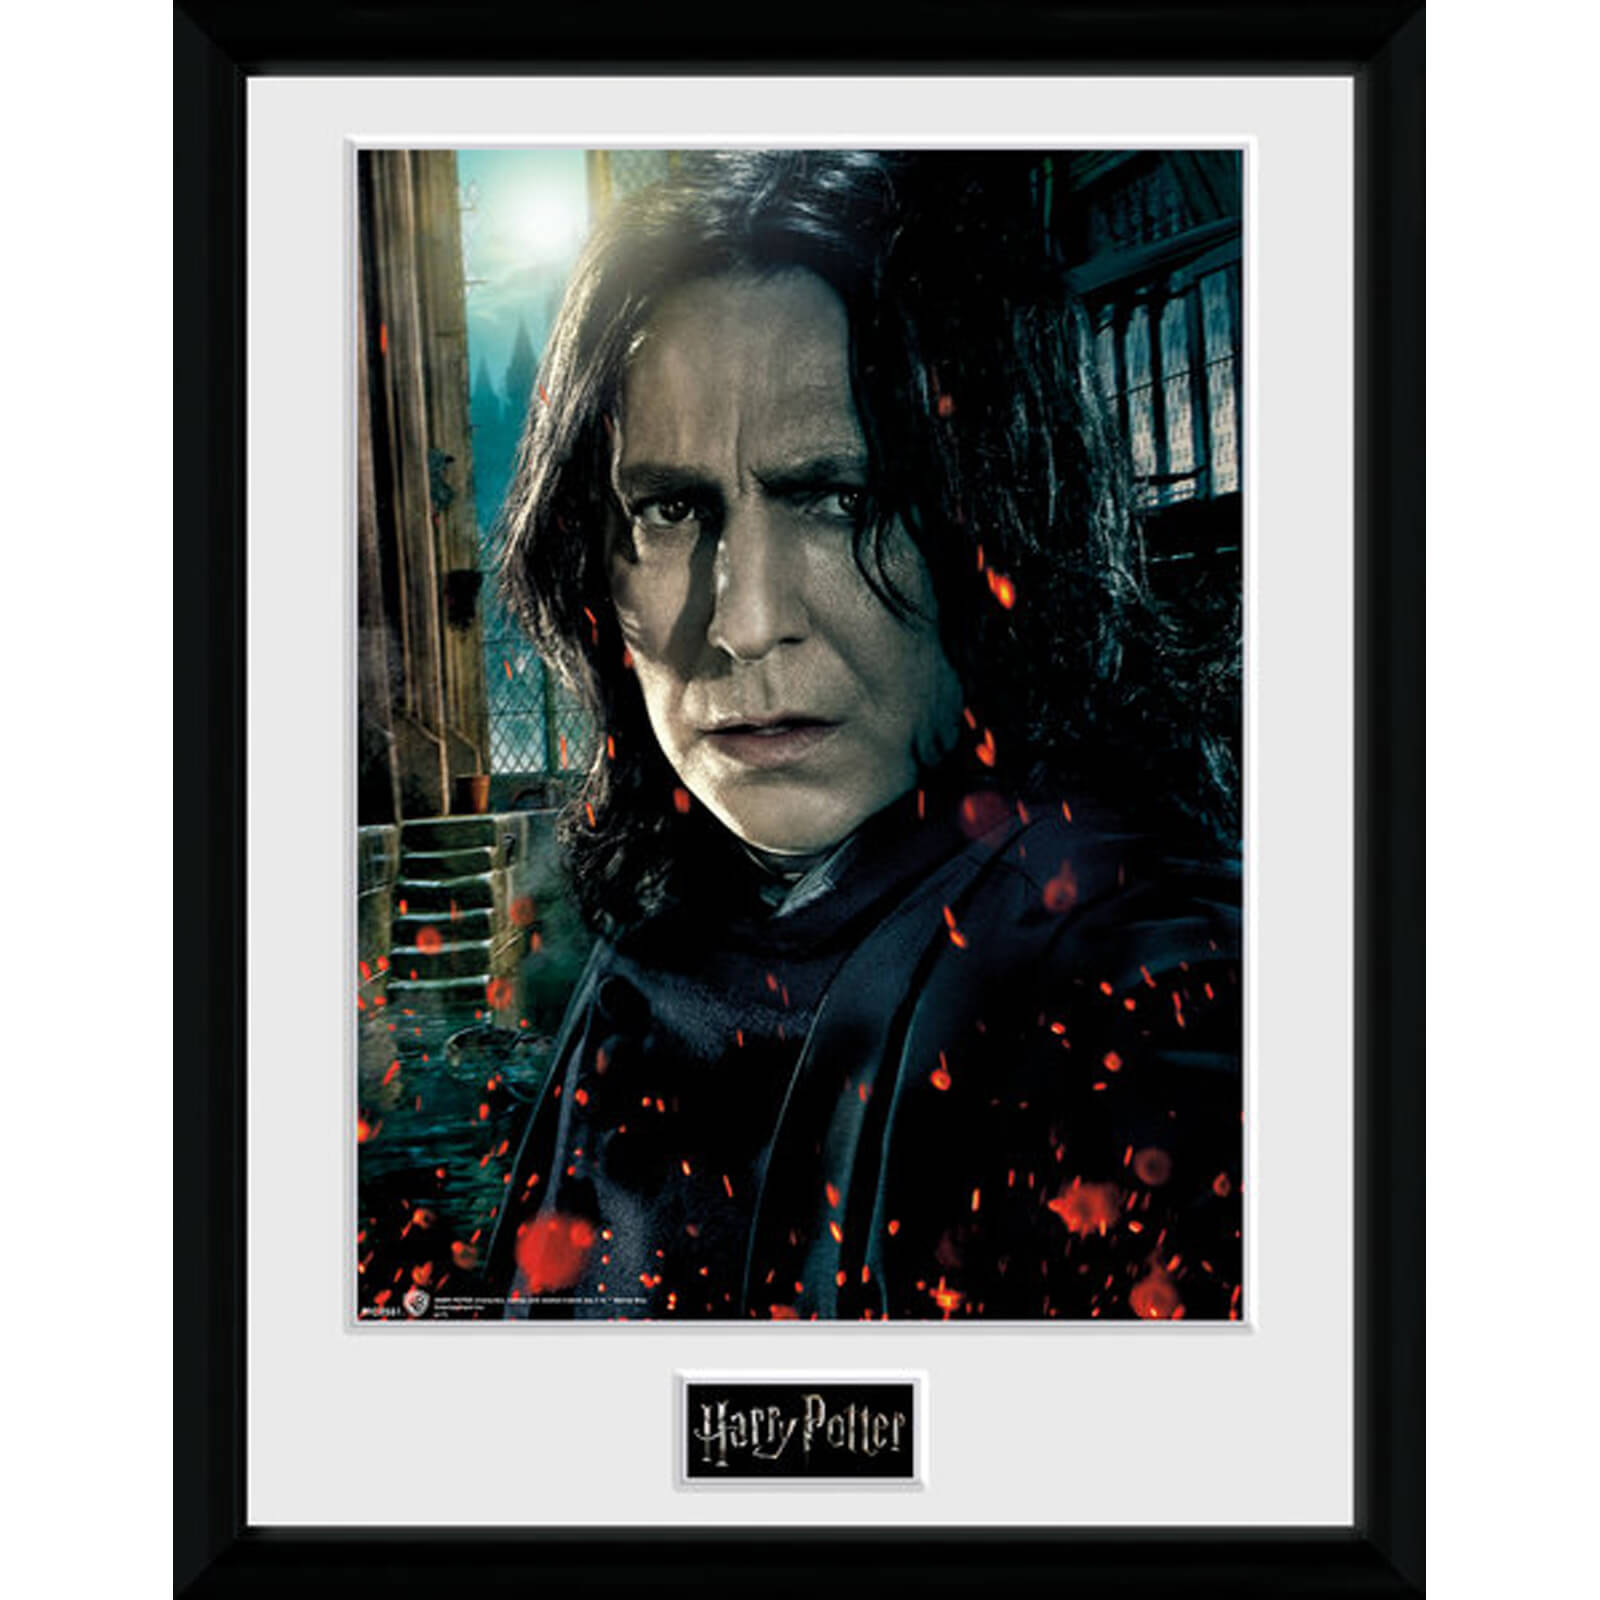 Harry Potter Snape 12 x 16 Inches Framed Photograph